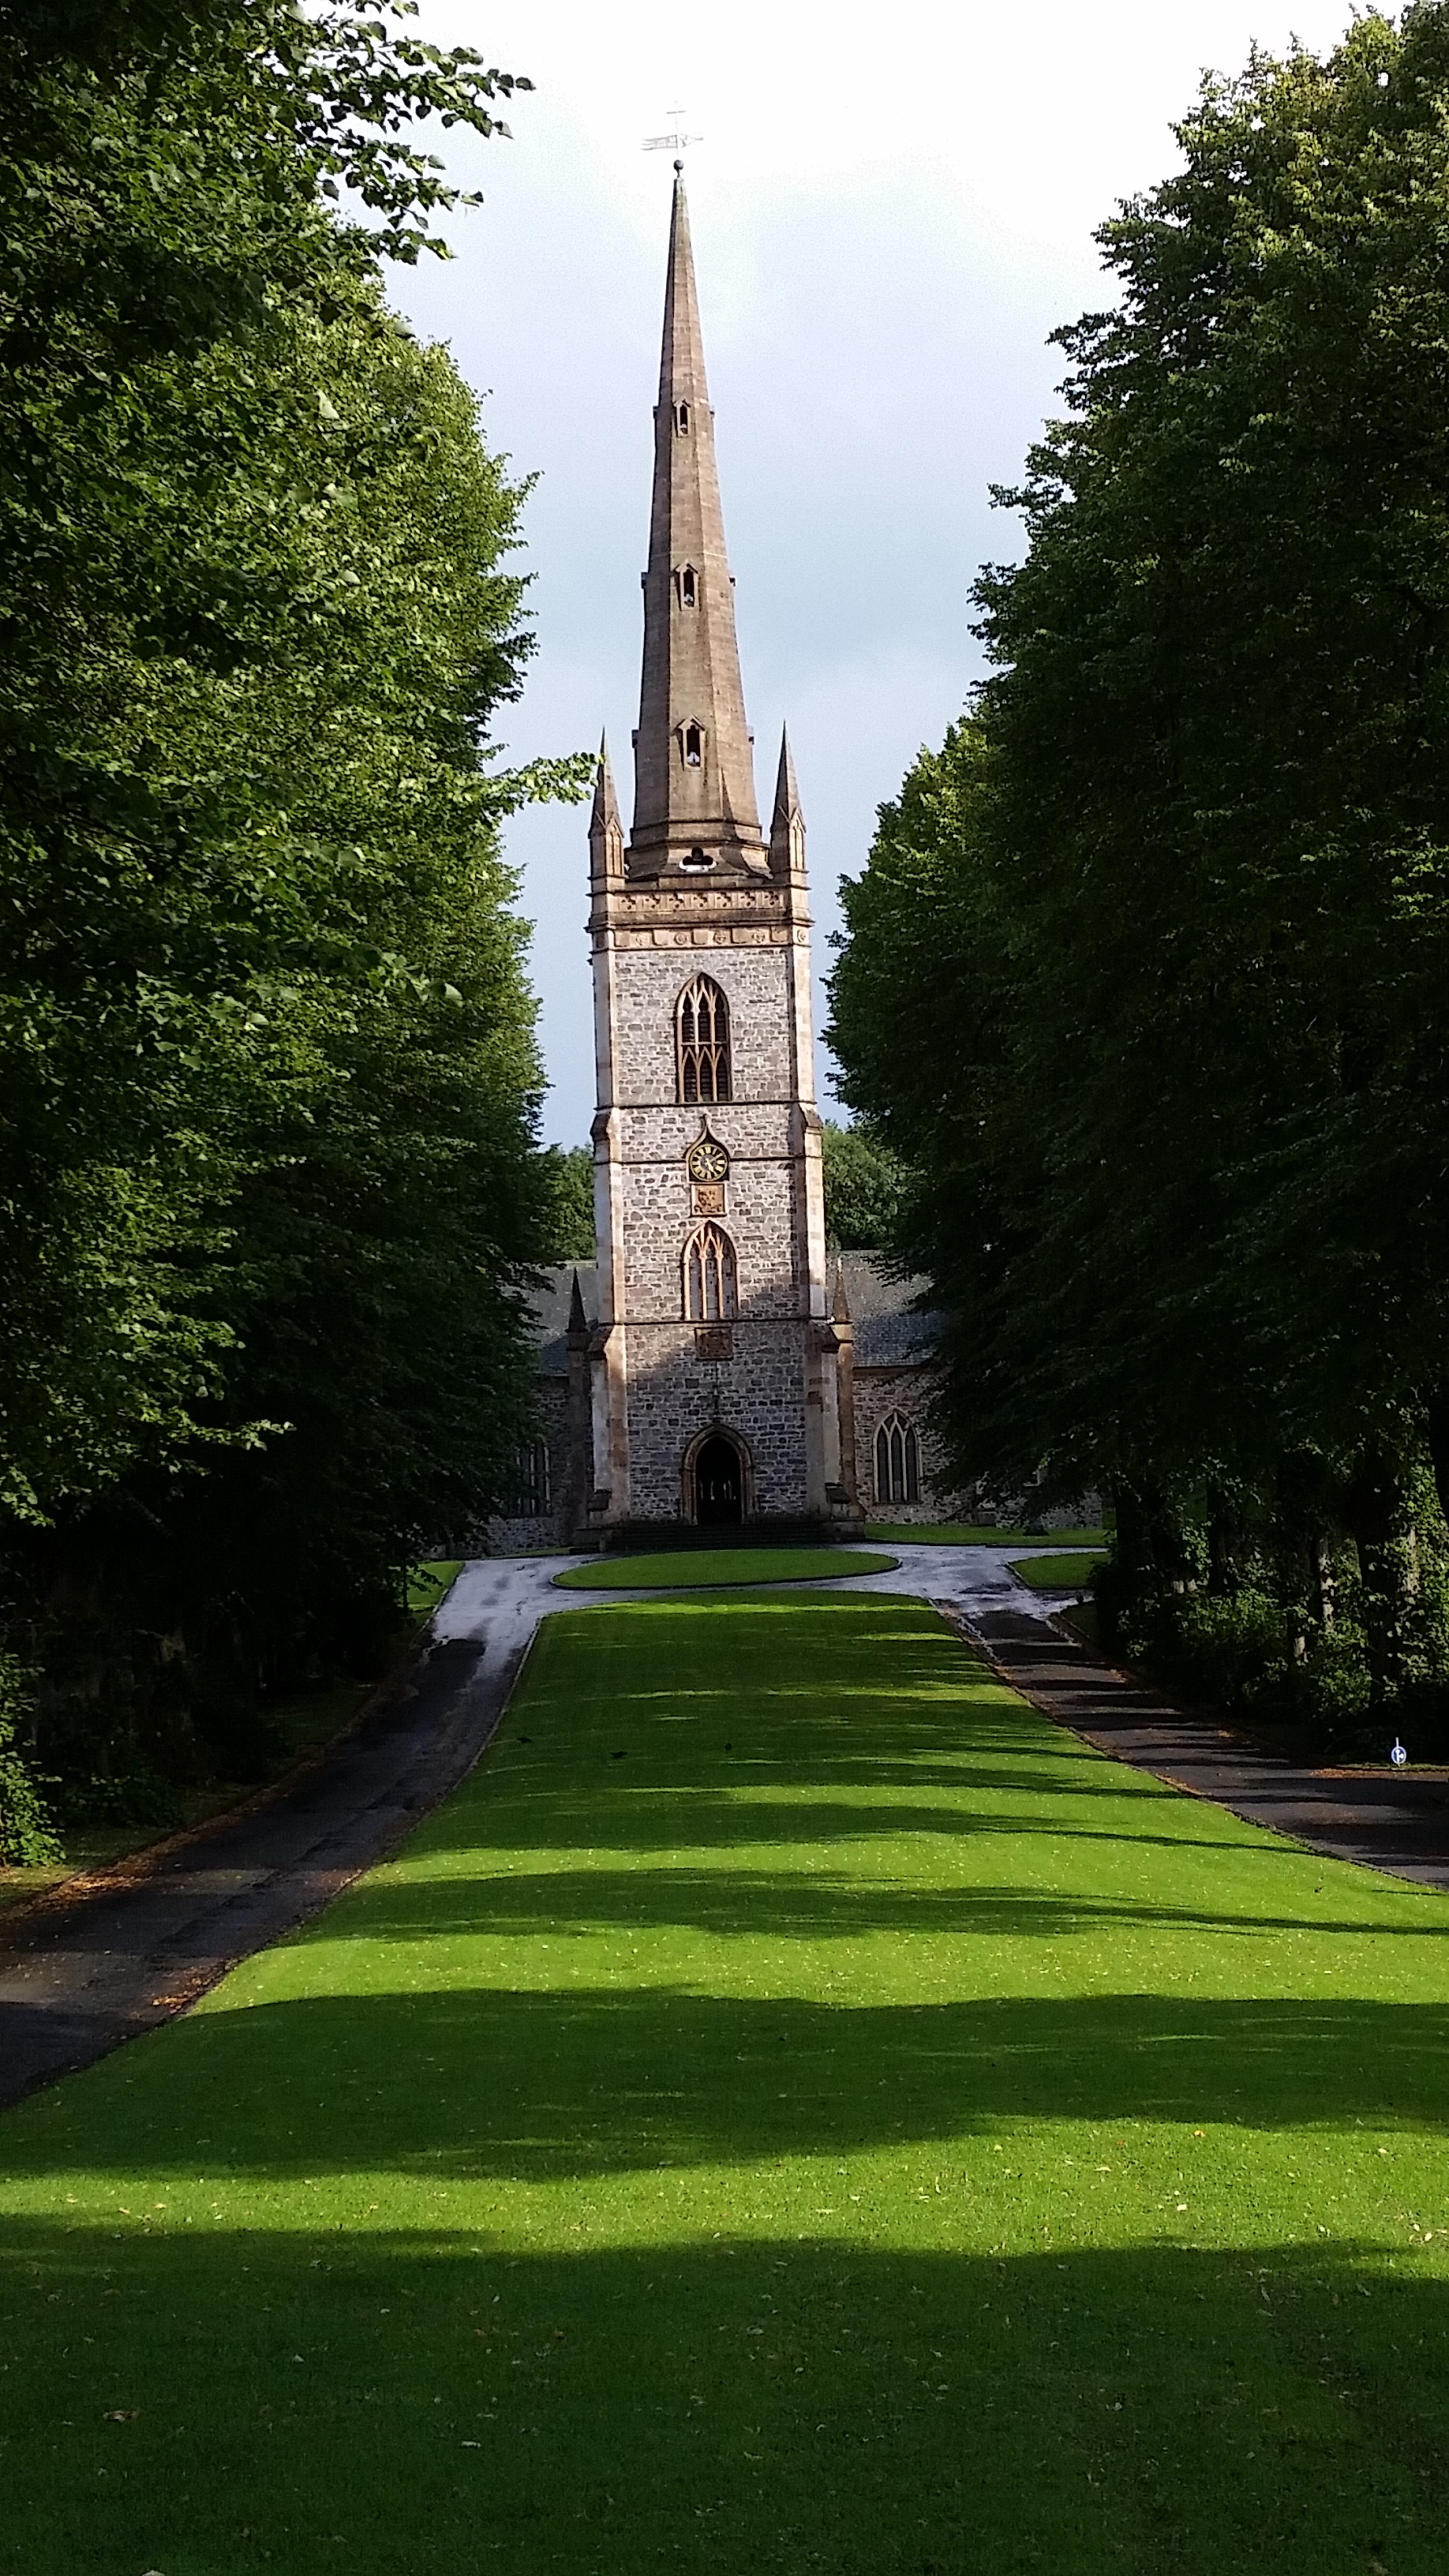 Third runner-up: Tamsin Wooldridge, St Malachy's Parish Church, Northern Ireland